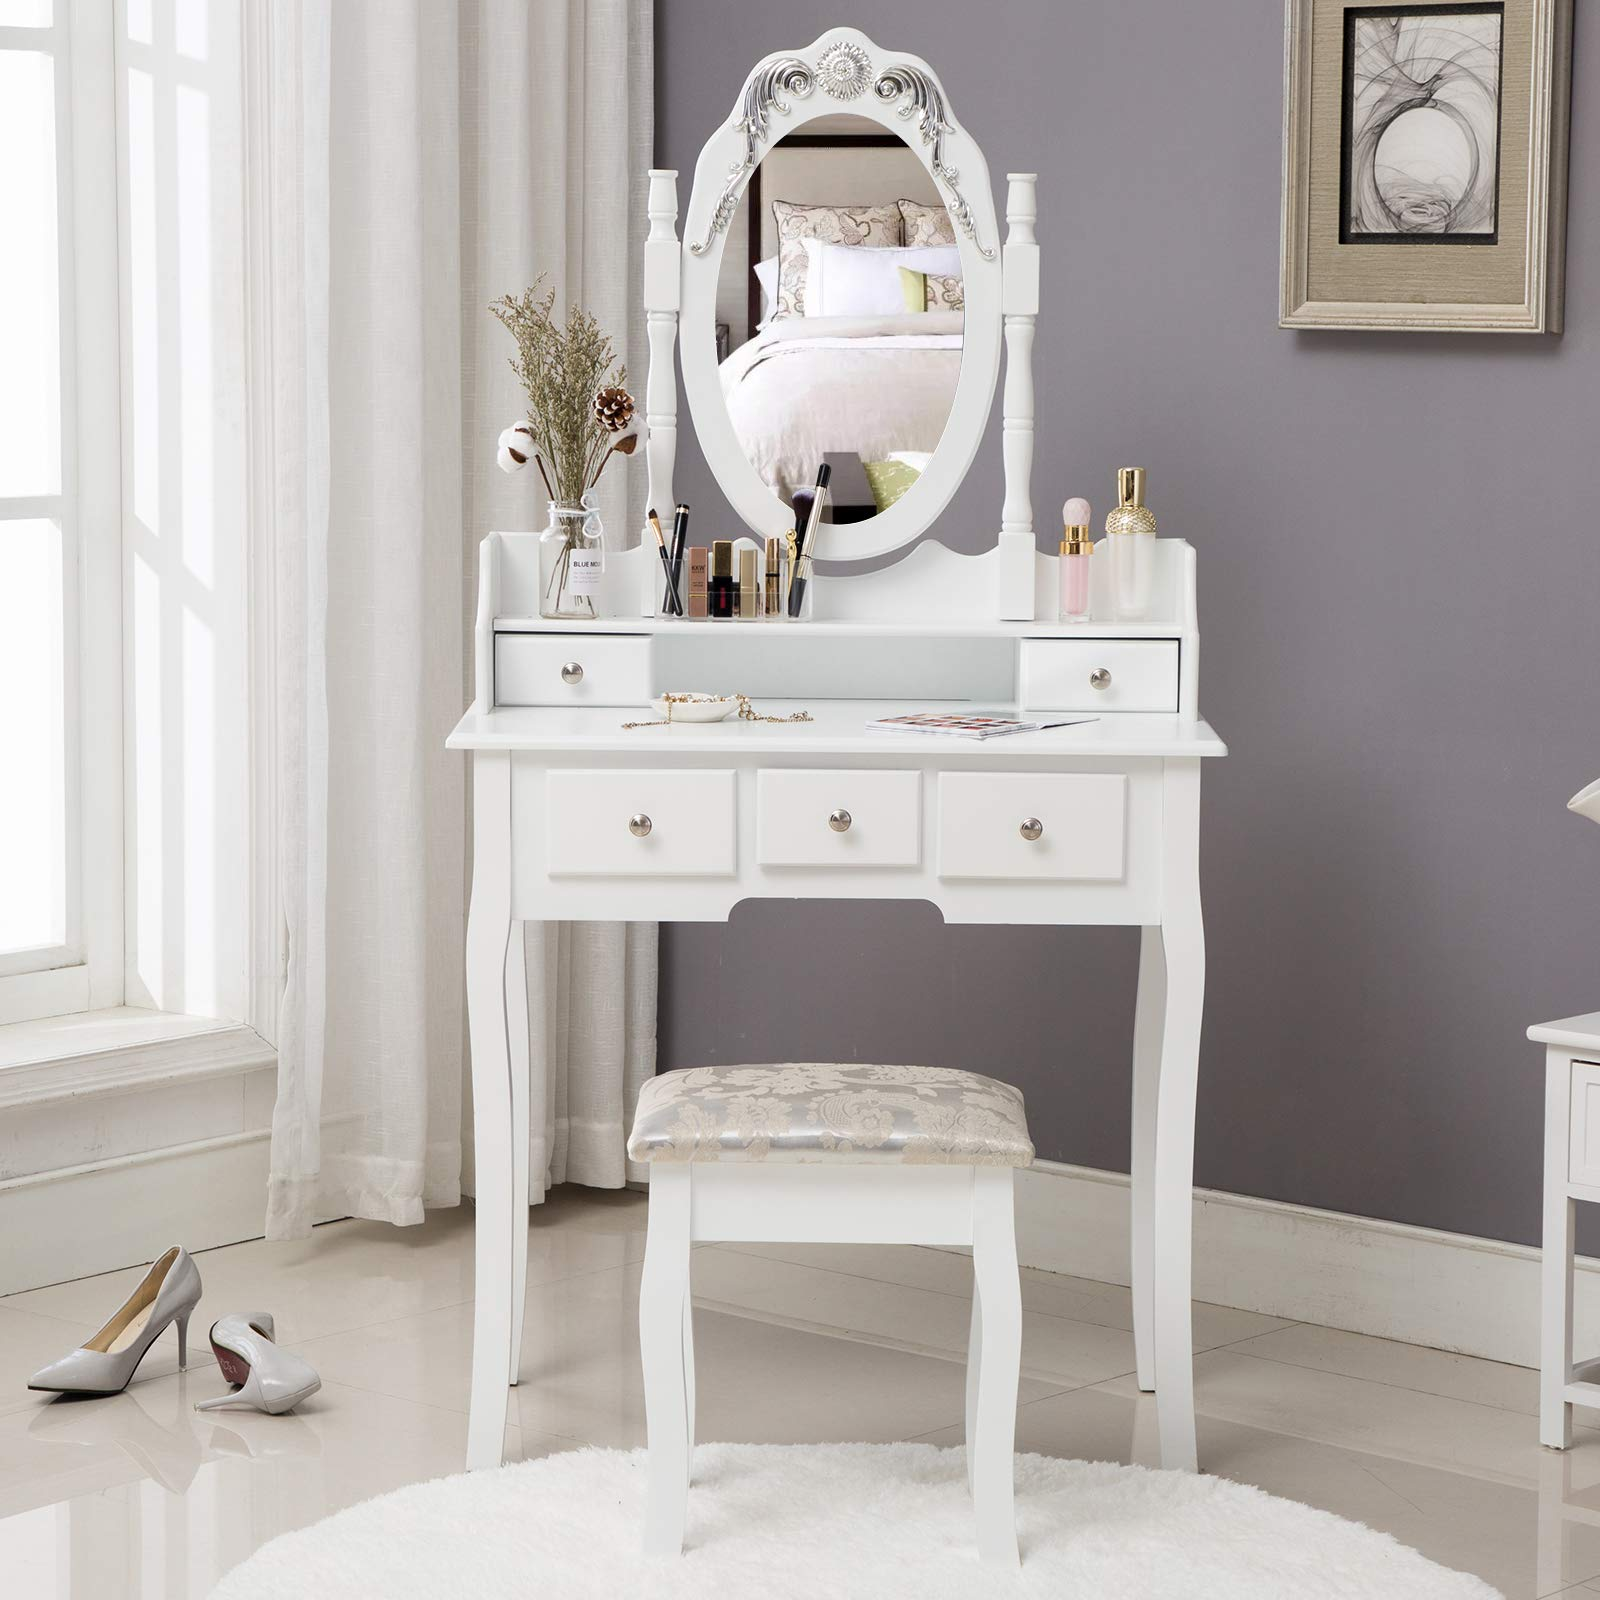 HONBAY Makeup Vanity Table Set and Cushioned Stool, Oval Mirror and Surprise Gift Makeup Organizer 5 Drawers Dressing Table White